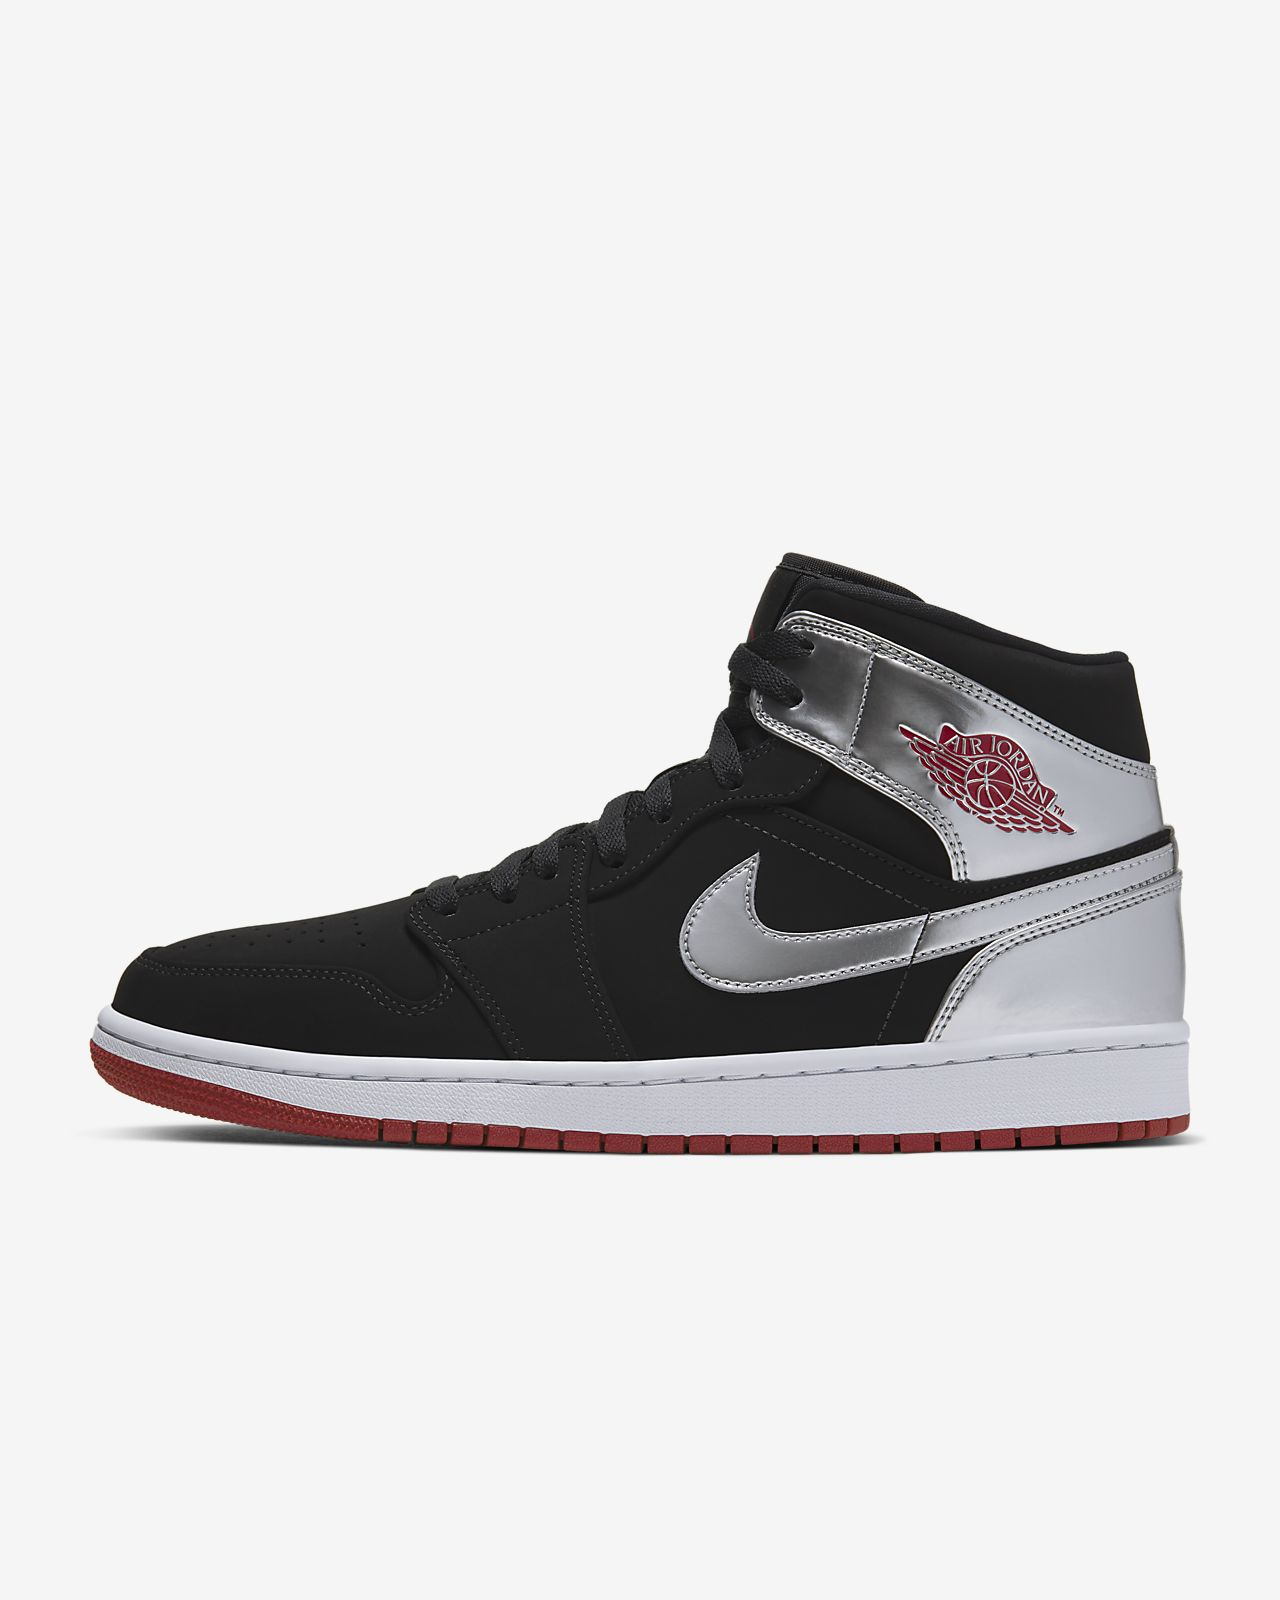 Air Jordan 1 Mid Shoe